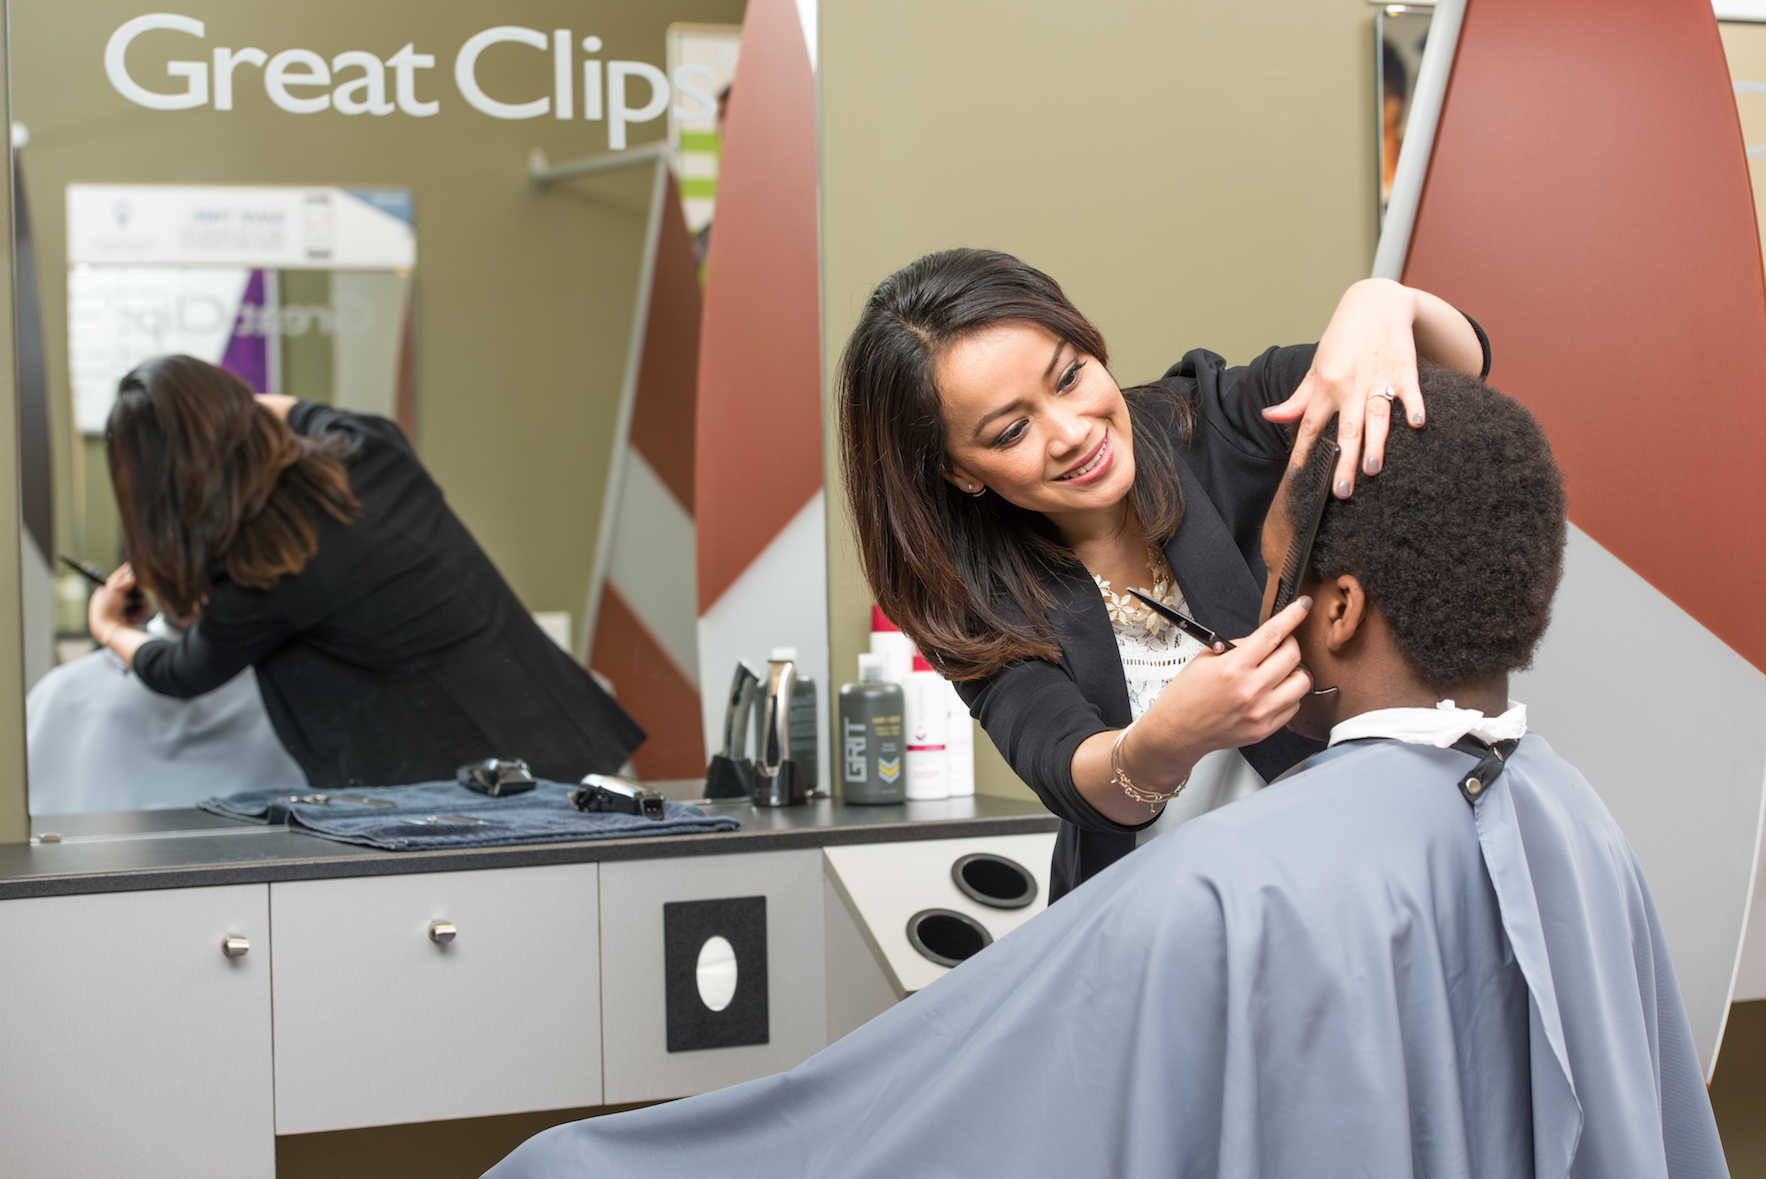 Great Clips Franchising Today Magazine